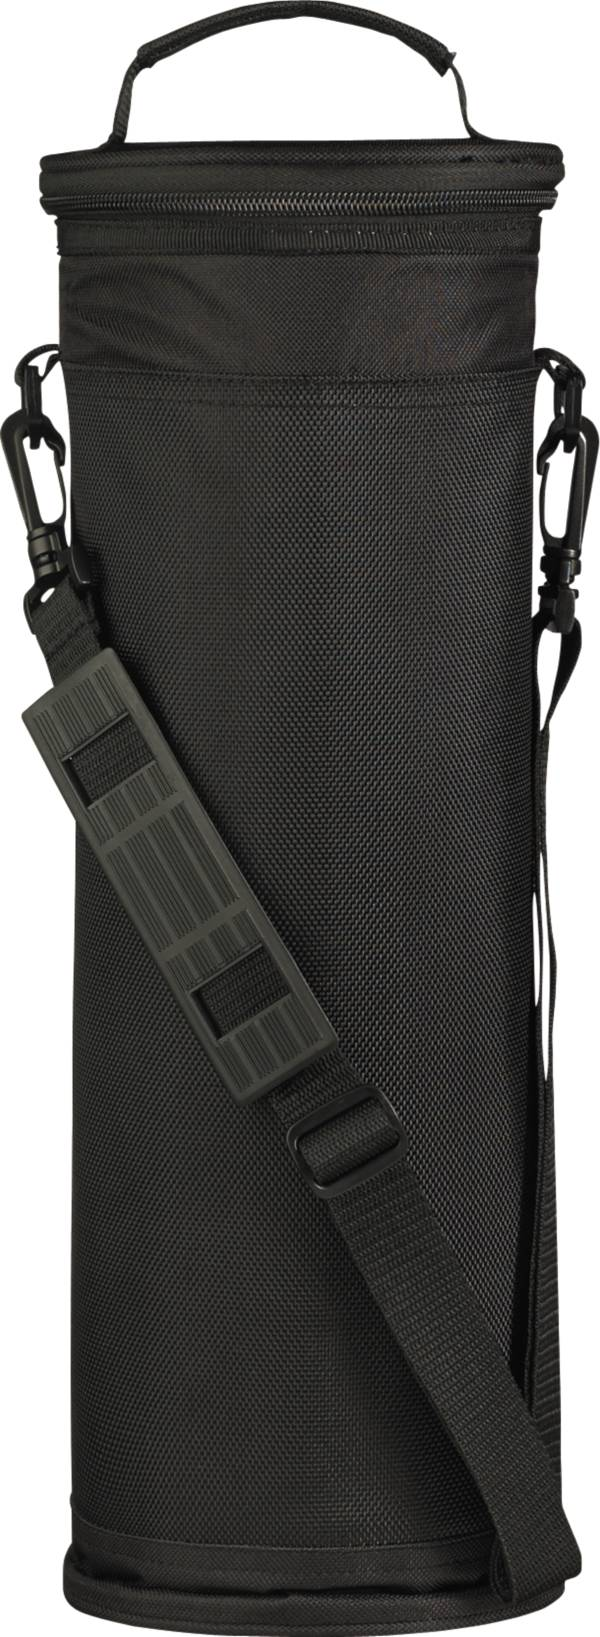 Maxfli Cooler Bag - Black product image